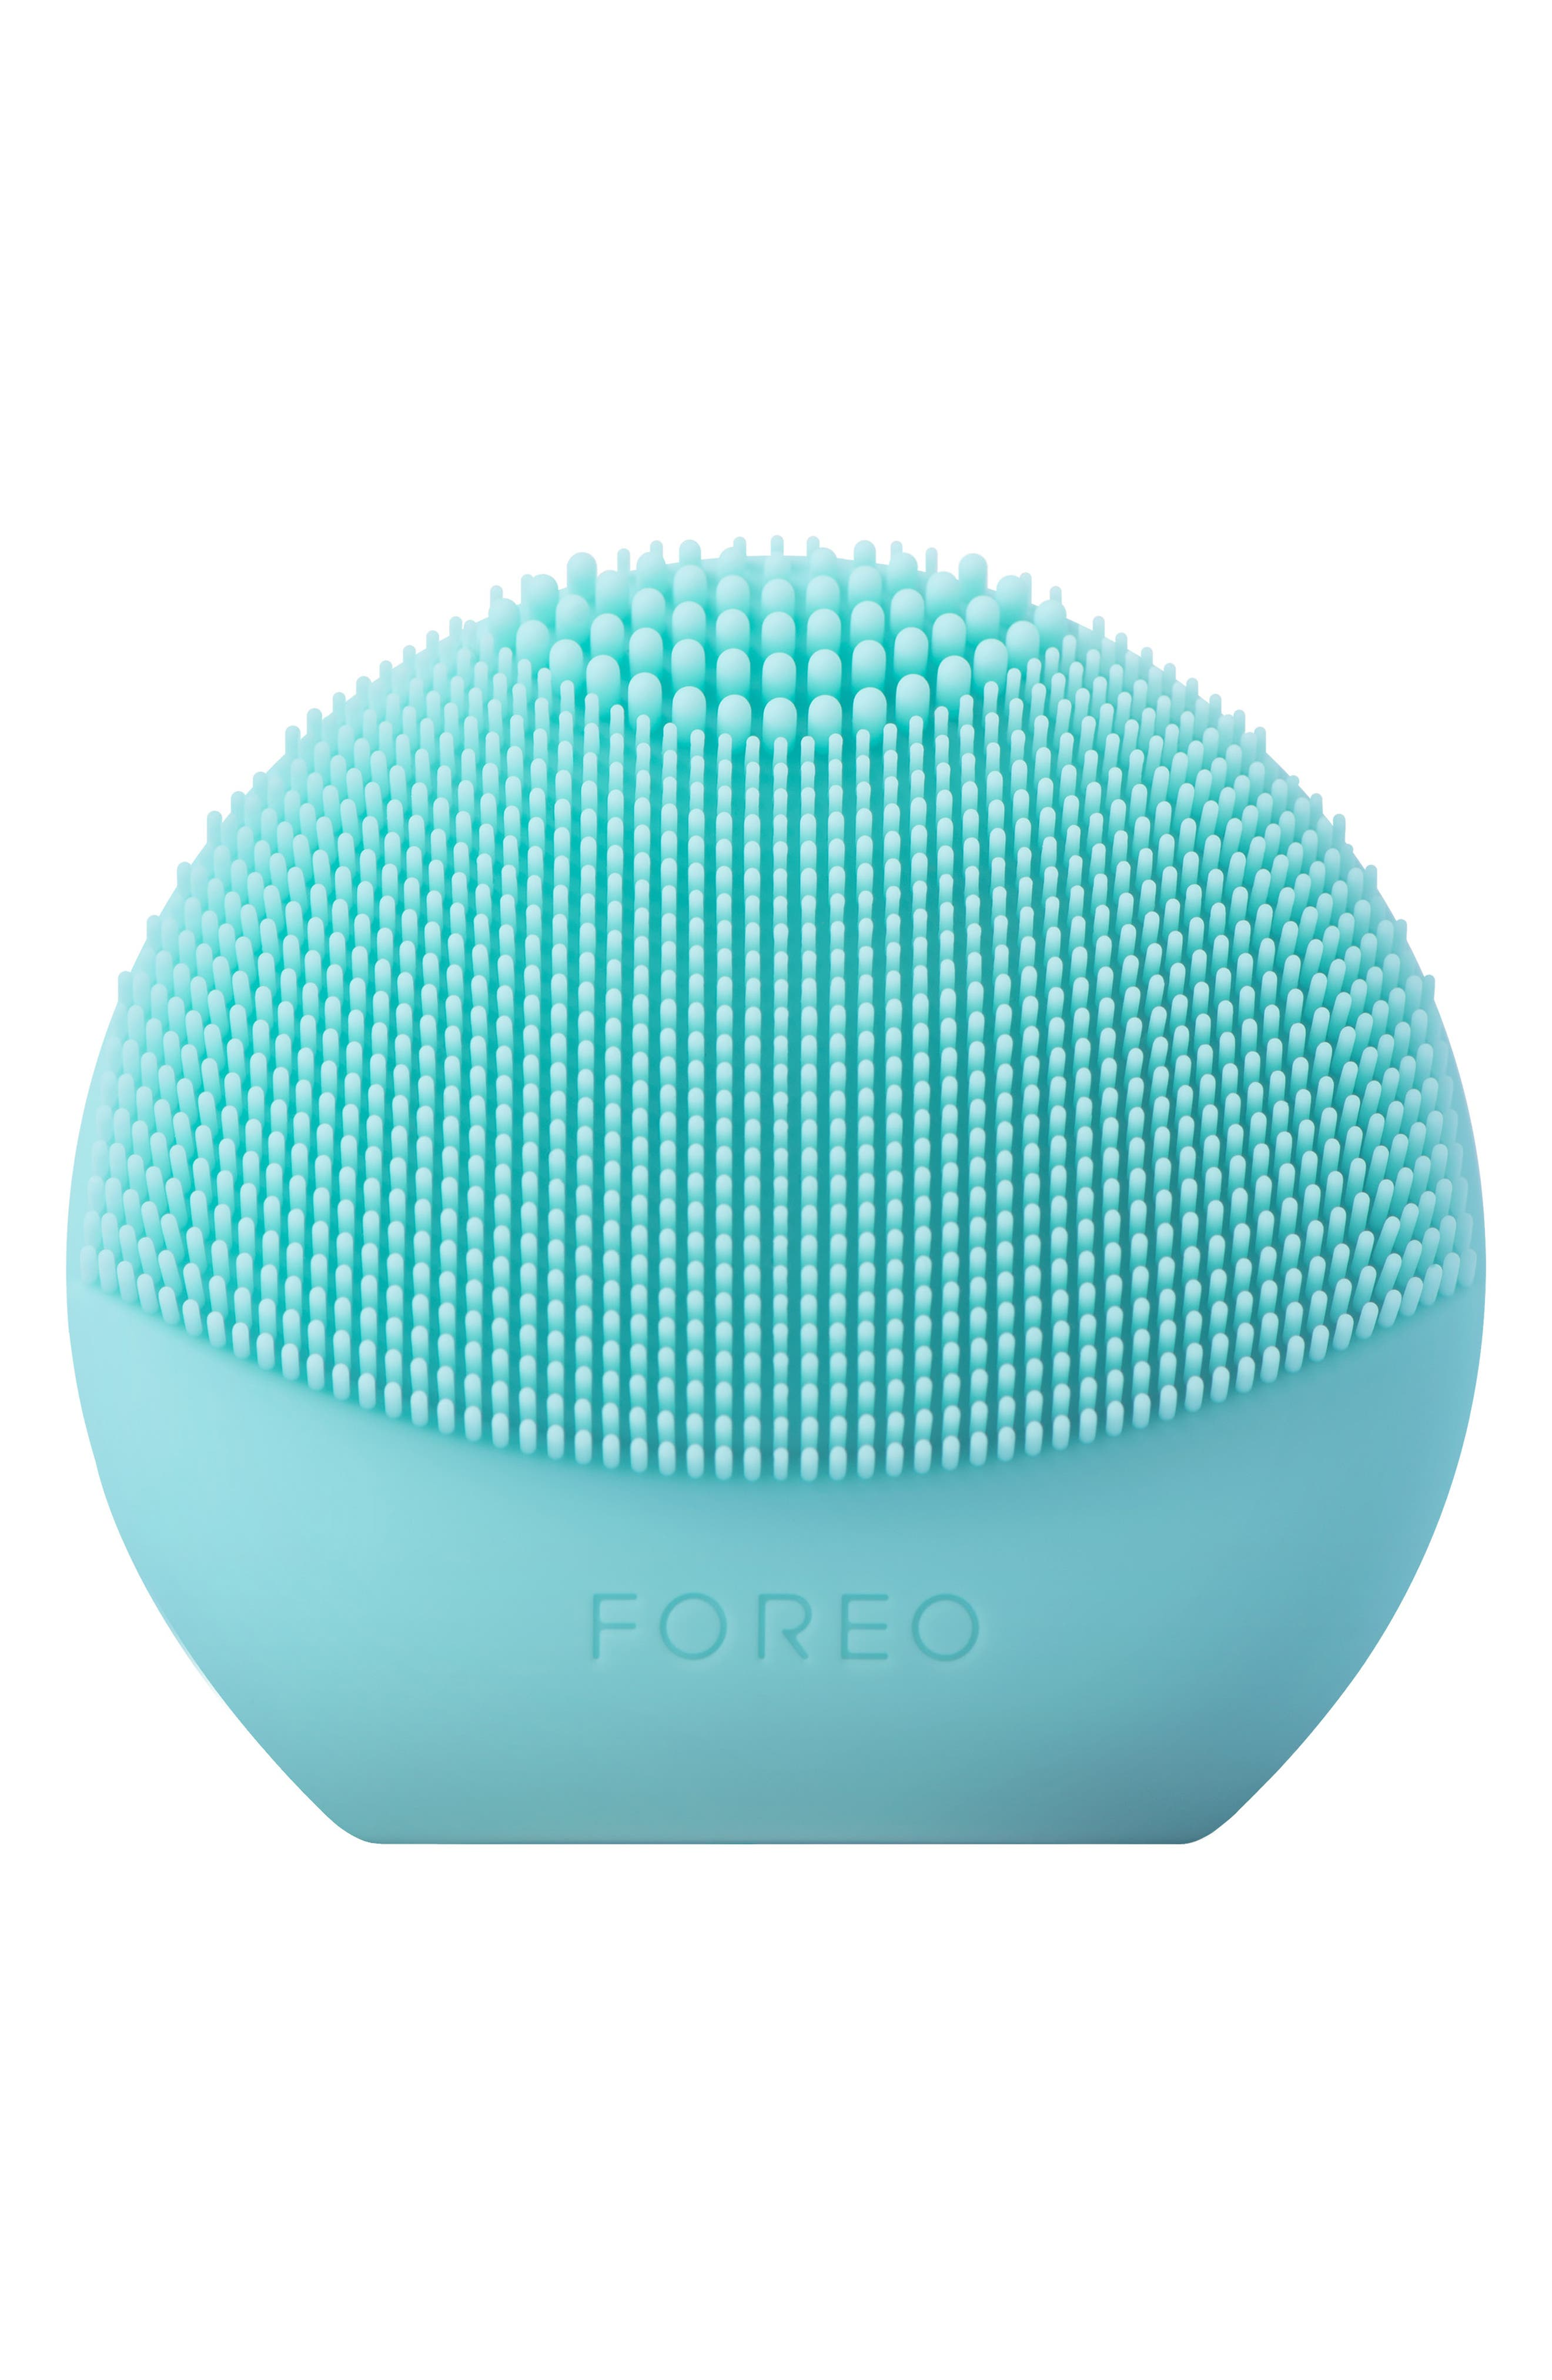 LUNA<sup>™</sup> fofo Skin Analysis Facial Cleansing Brush,                             Main thumbnail 1, color,                             MINT